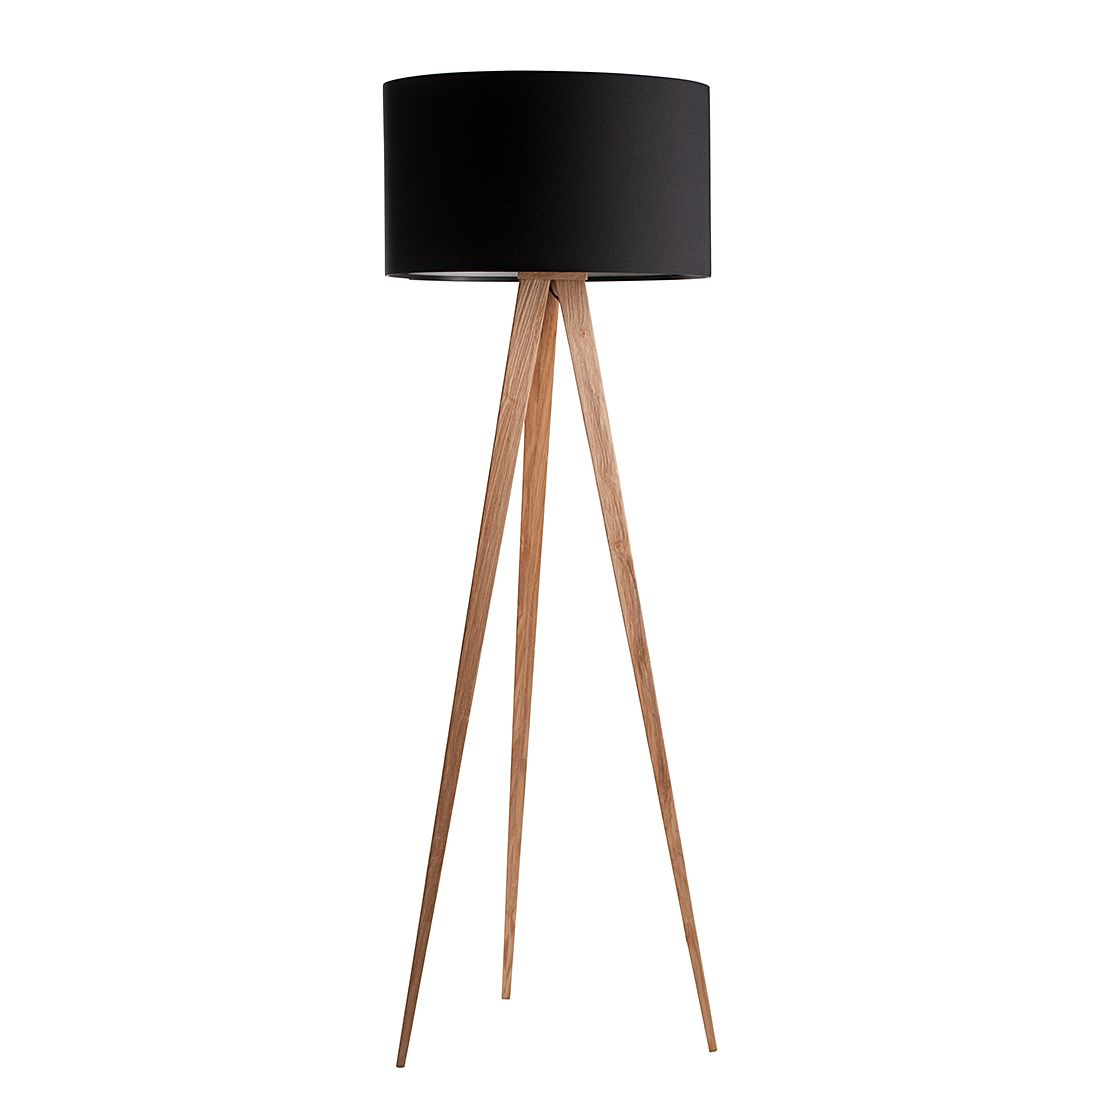 eek a stehleuchte tripod wood schwarz zuiver kaufen. Black Bedroom Furniture Sets. Home Design Ideas